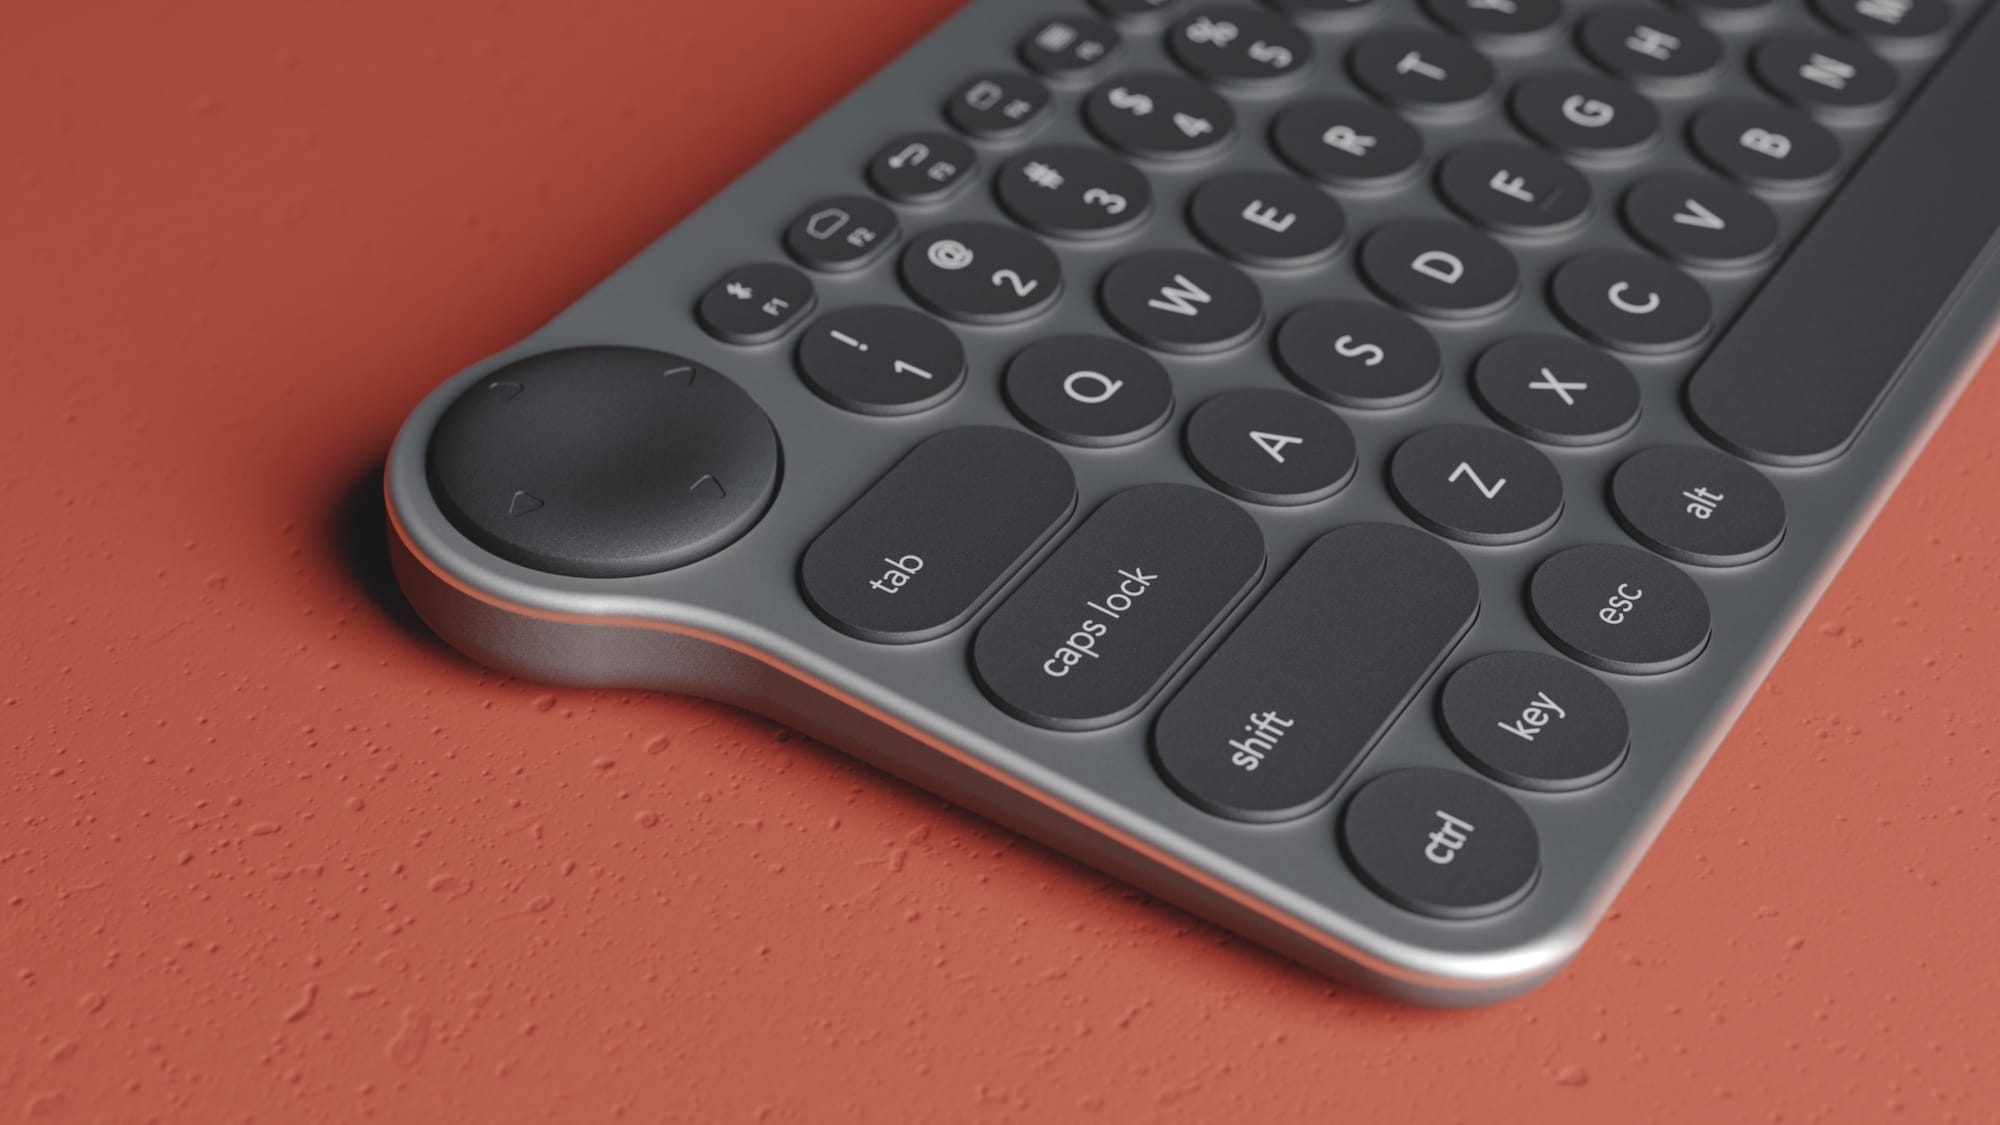 Switcheroo concept gaming keyboard has a built-in controller